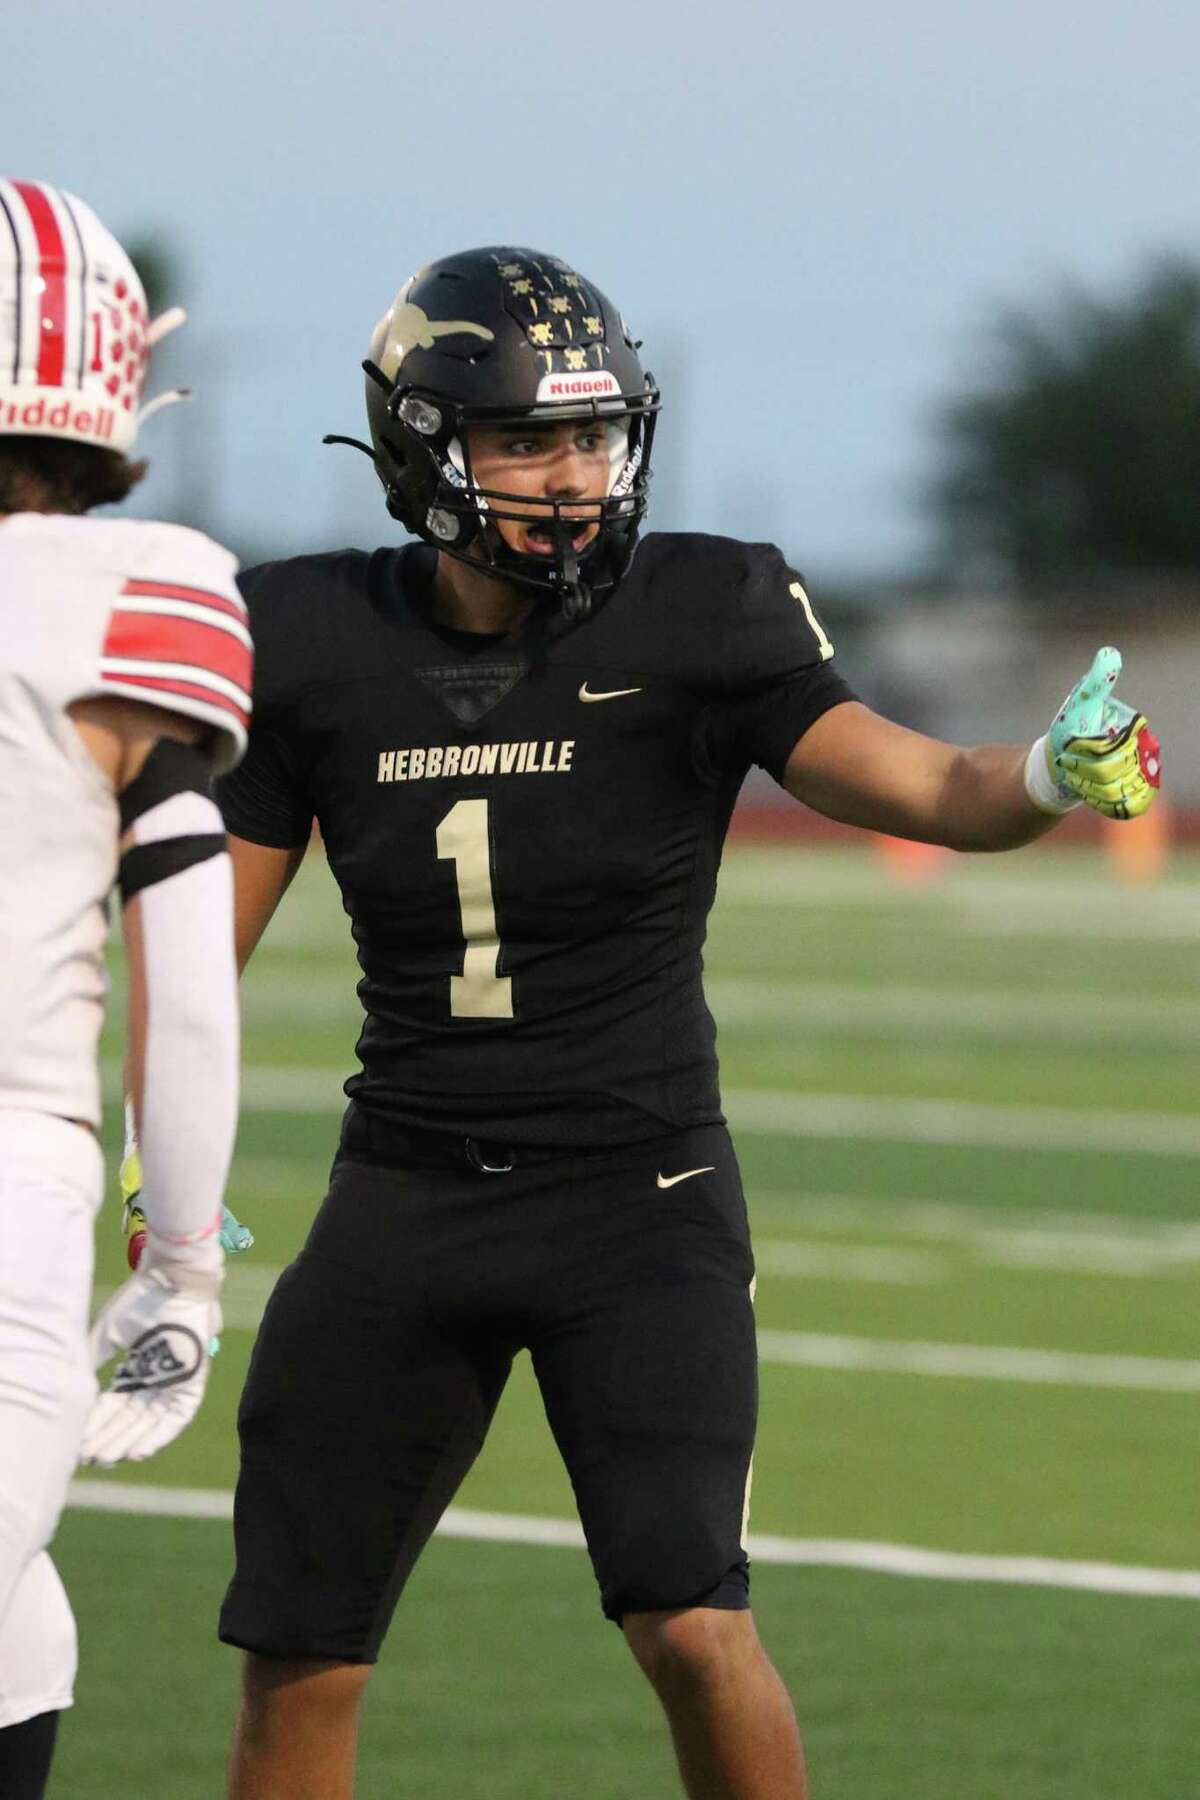 Hebbronville Erick Perez's father and uncles all played for the Longhorns. The senior is hoping to help lead his team to a district title this season, and hopefully, an undefeated record.